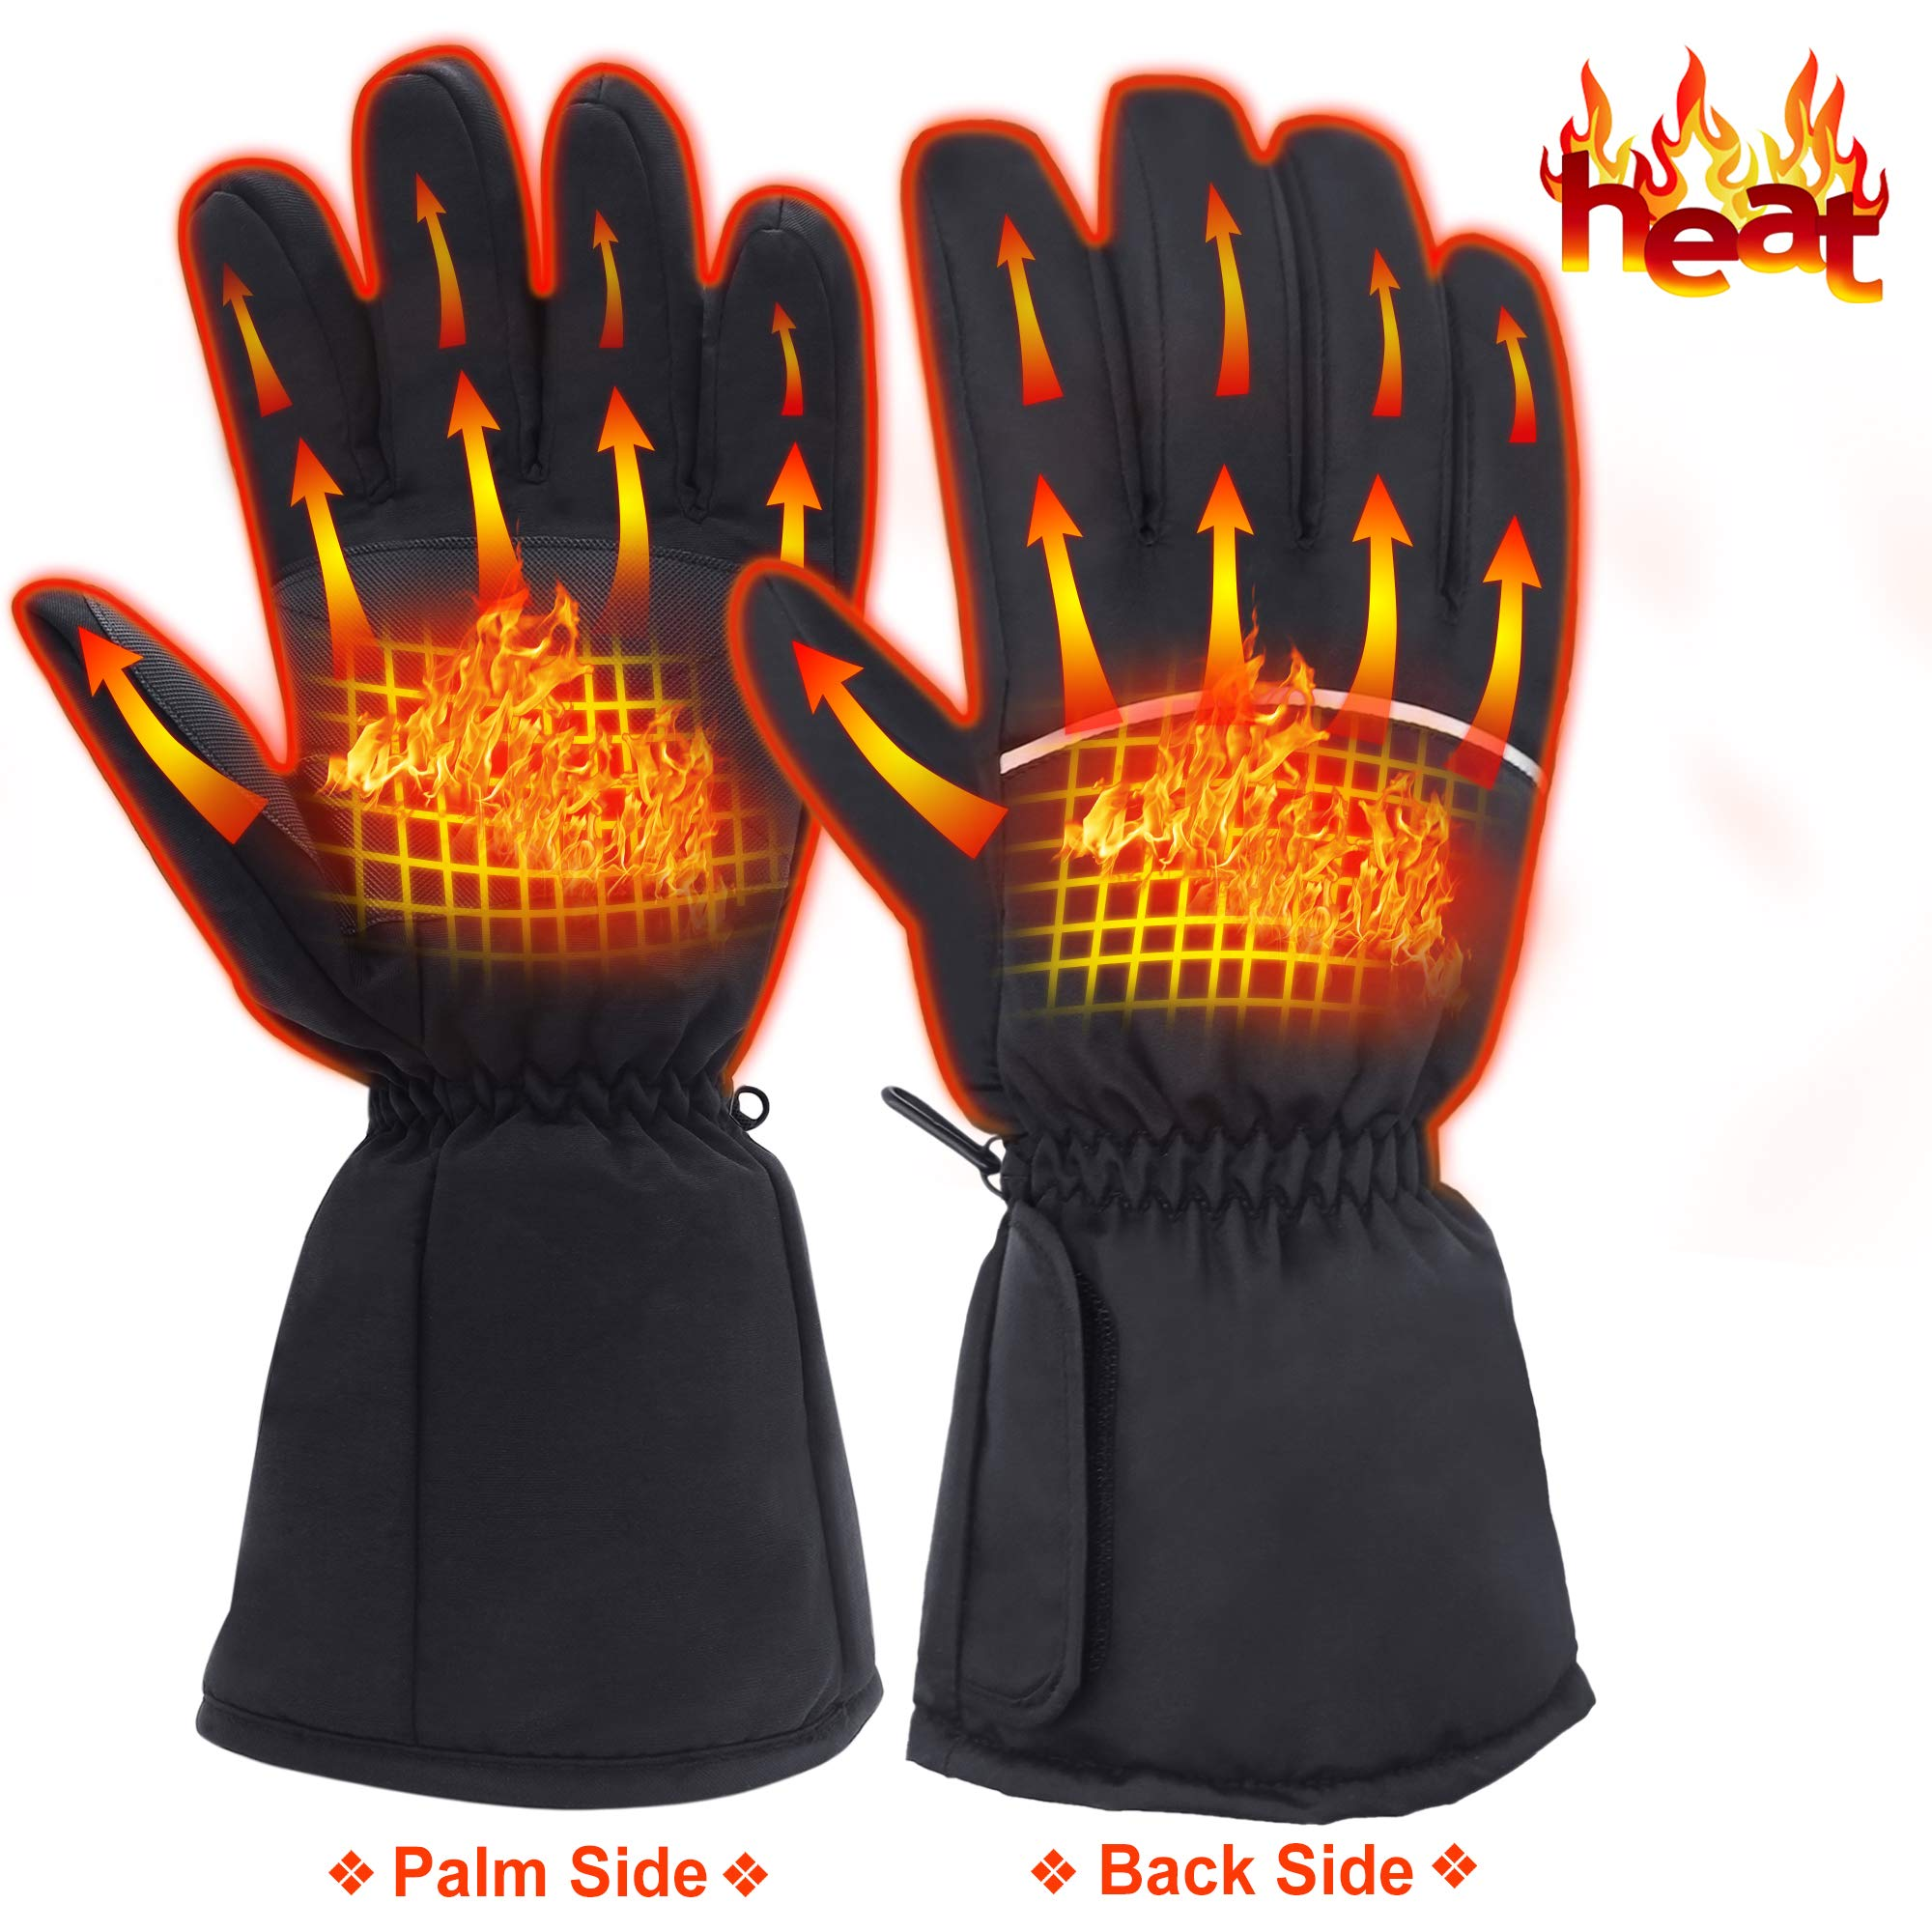 Rechargeable Electric Heated Gloves-Men Women Battery Powered Heating Gloves,Waterproof Thermal Insulated Heated Gloves for Winter Sports Outdoors Climbing Hiking,Perfect Gift Ideas as Hand Warmer